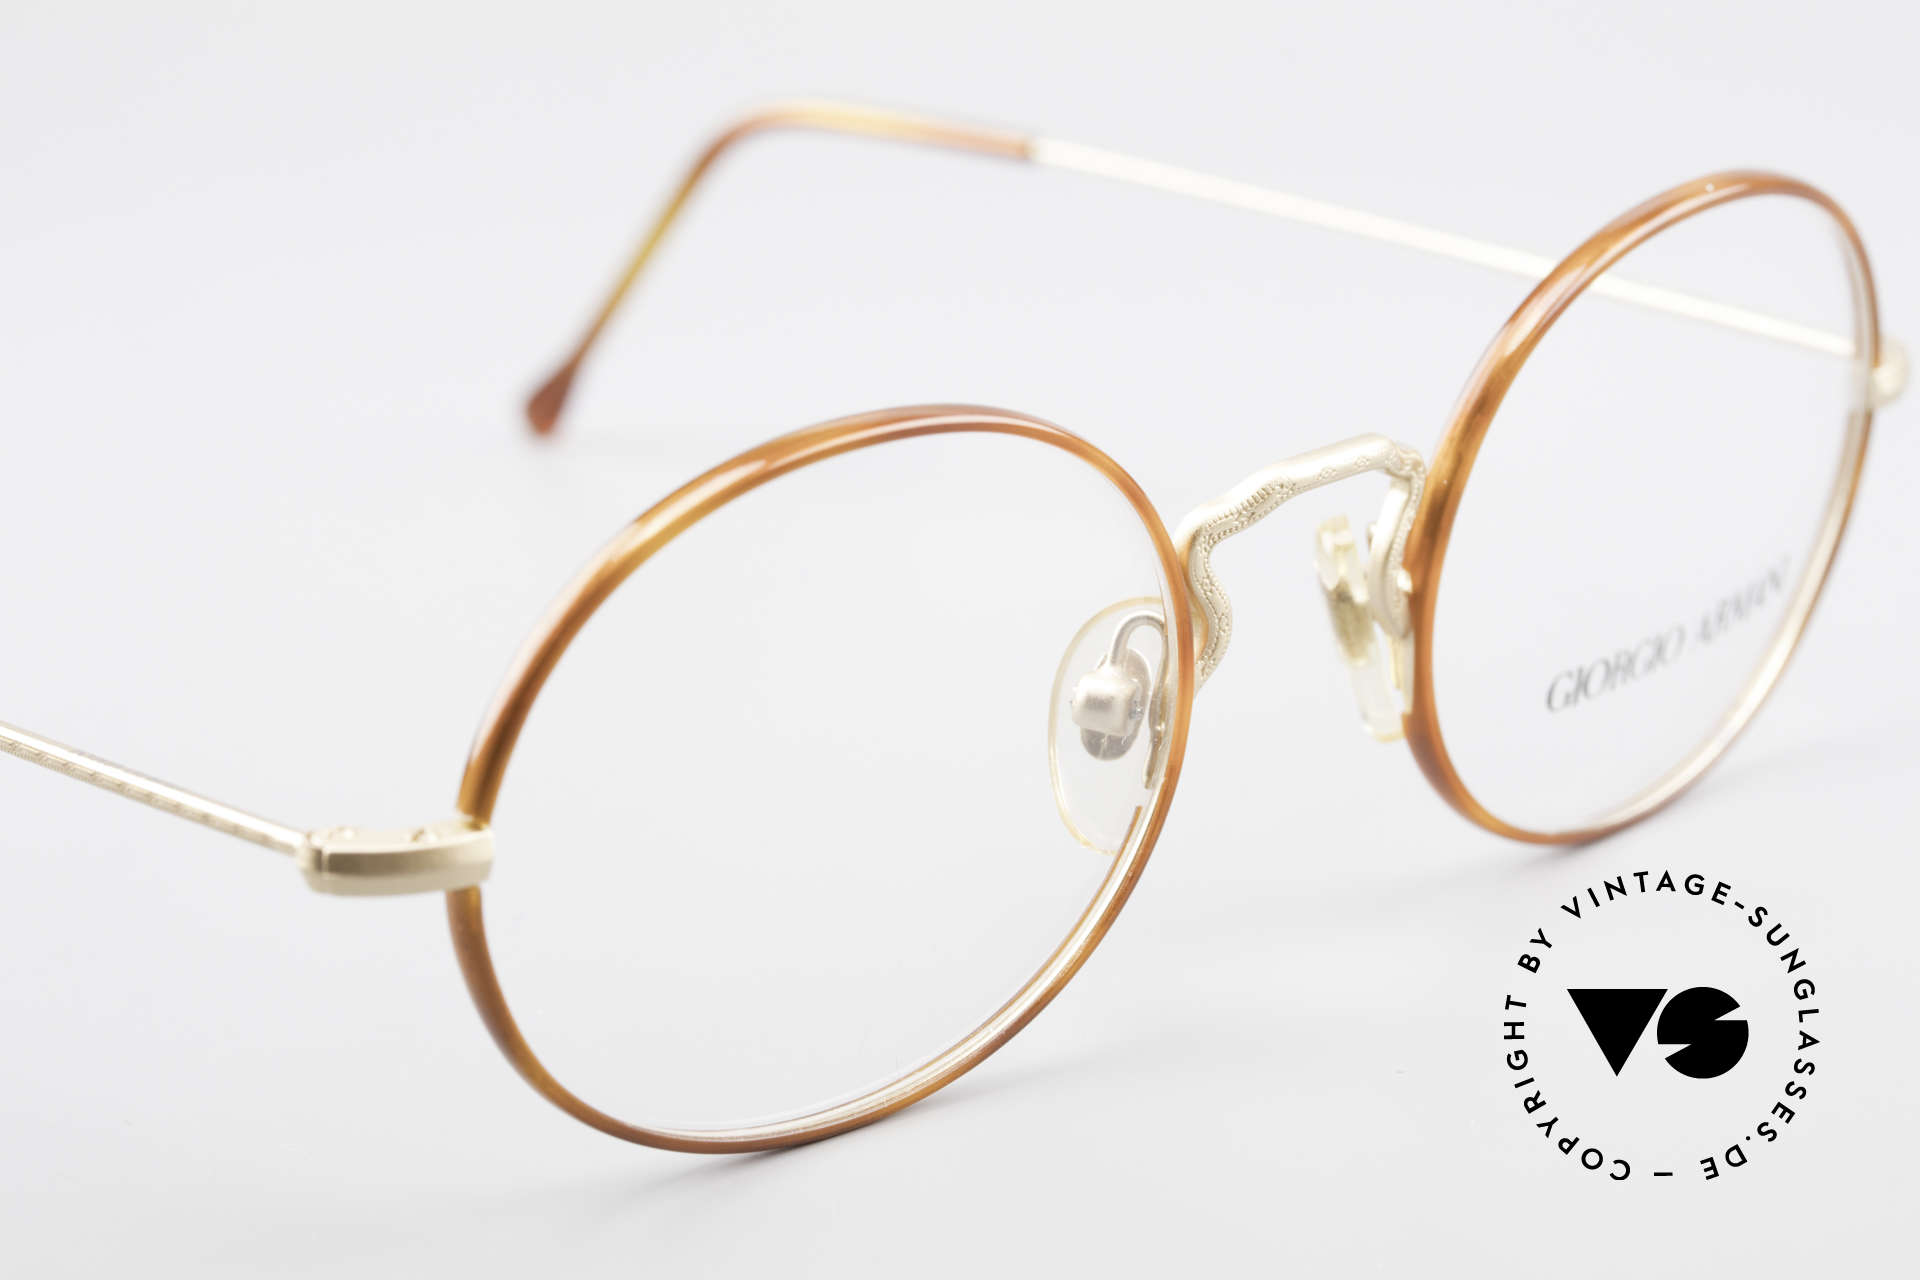 Giorgio Armani 247 90's Oval Eyeglasses No Retro, frame can be glazed with optical lenses / sun lenses, Made for Men and Women